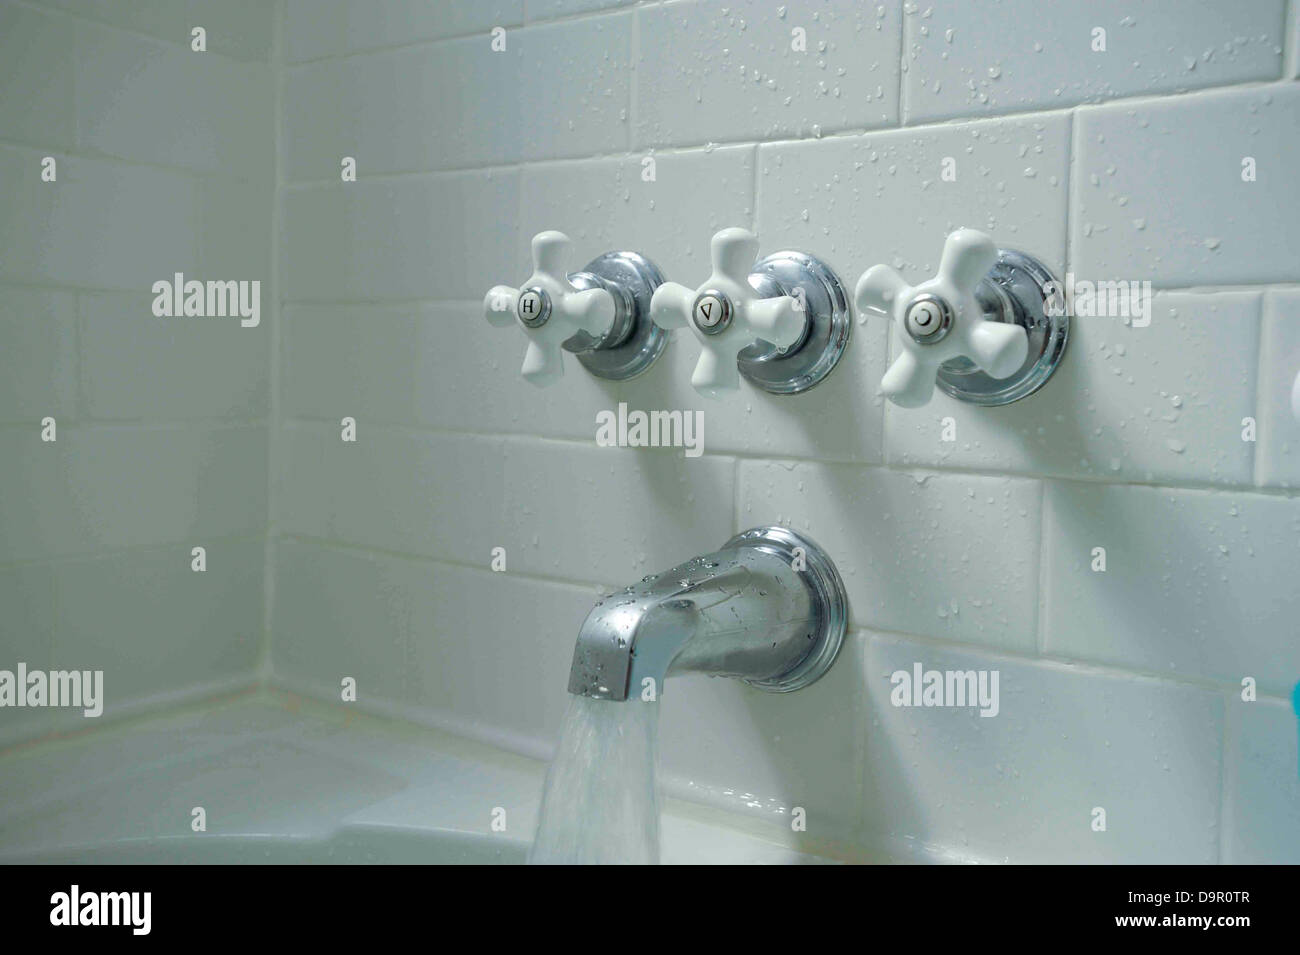 Bathtub fixtures and white subway tile Stock Photo: 57668599 - Alamy